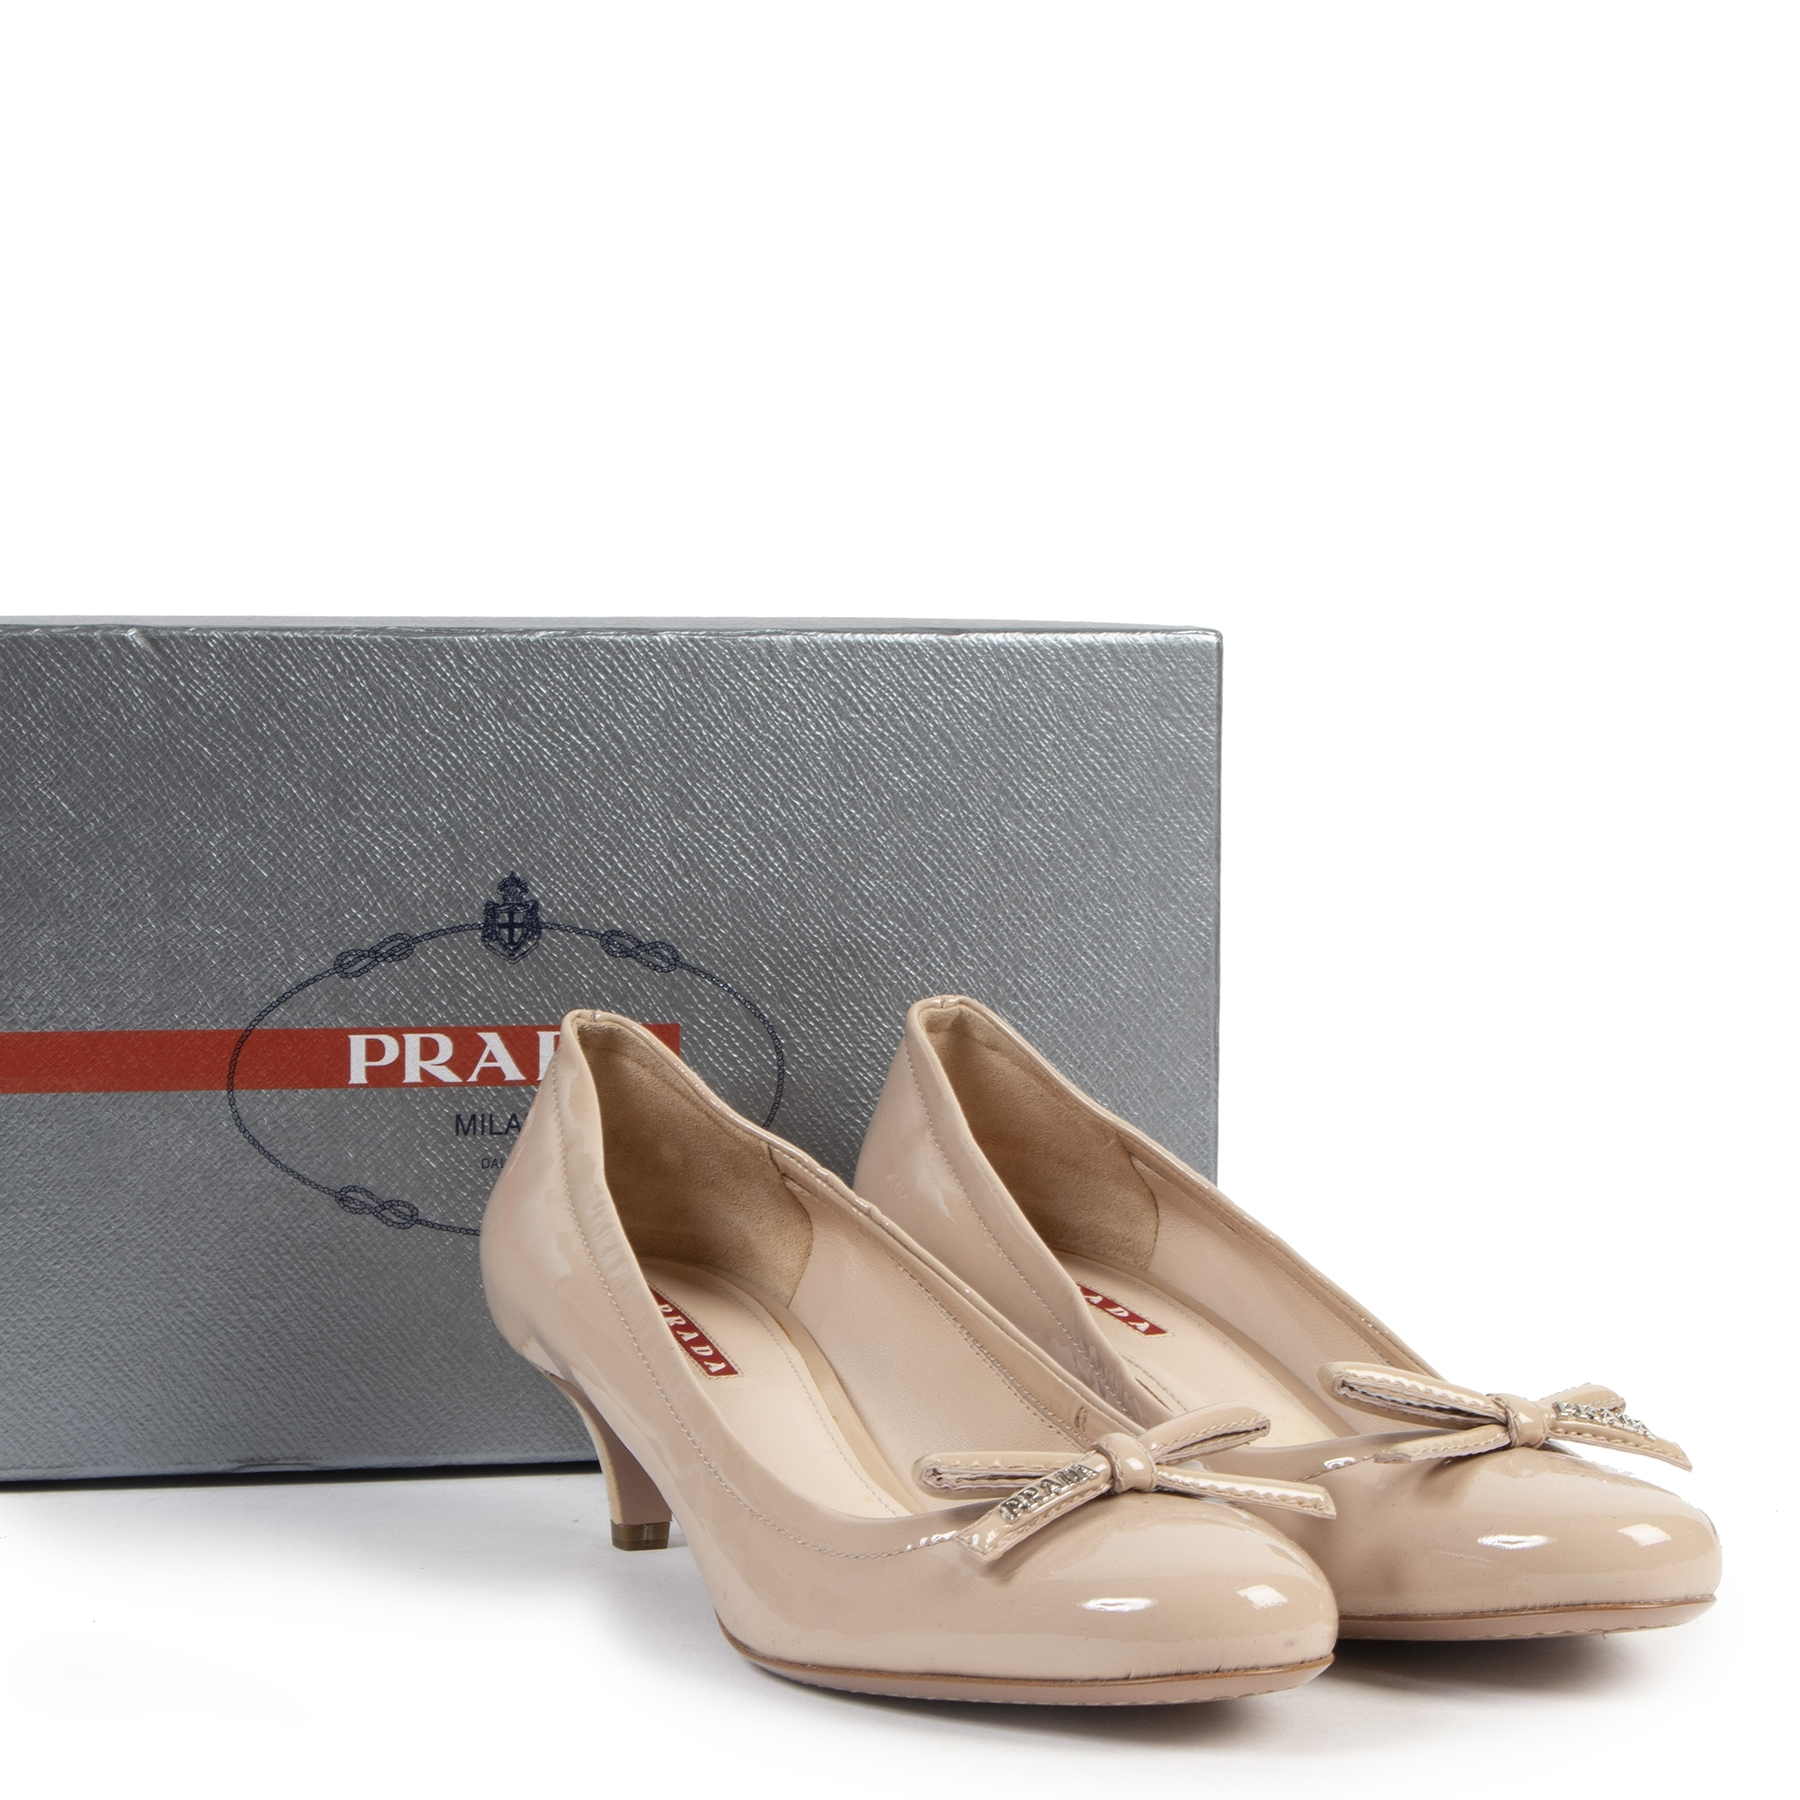 Authentic secondhand Prada Nude Sport Patent Leather Bow Kitten Heel - Size 38,5 designer shoes pumps fashion luxury vintage webshop safe secure online shopping